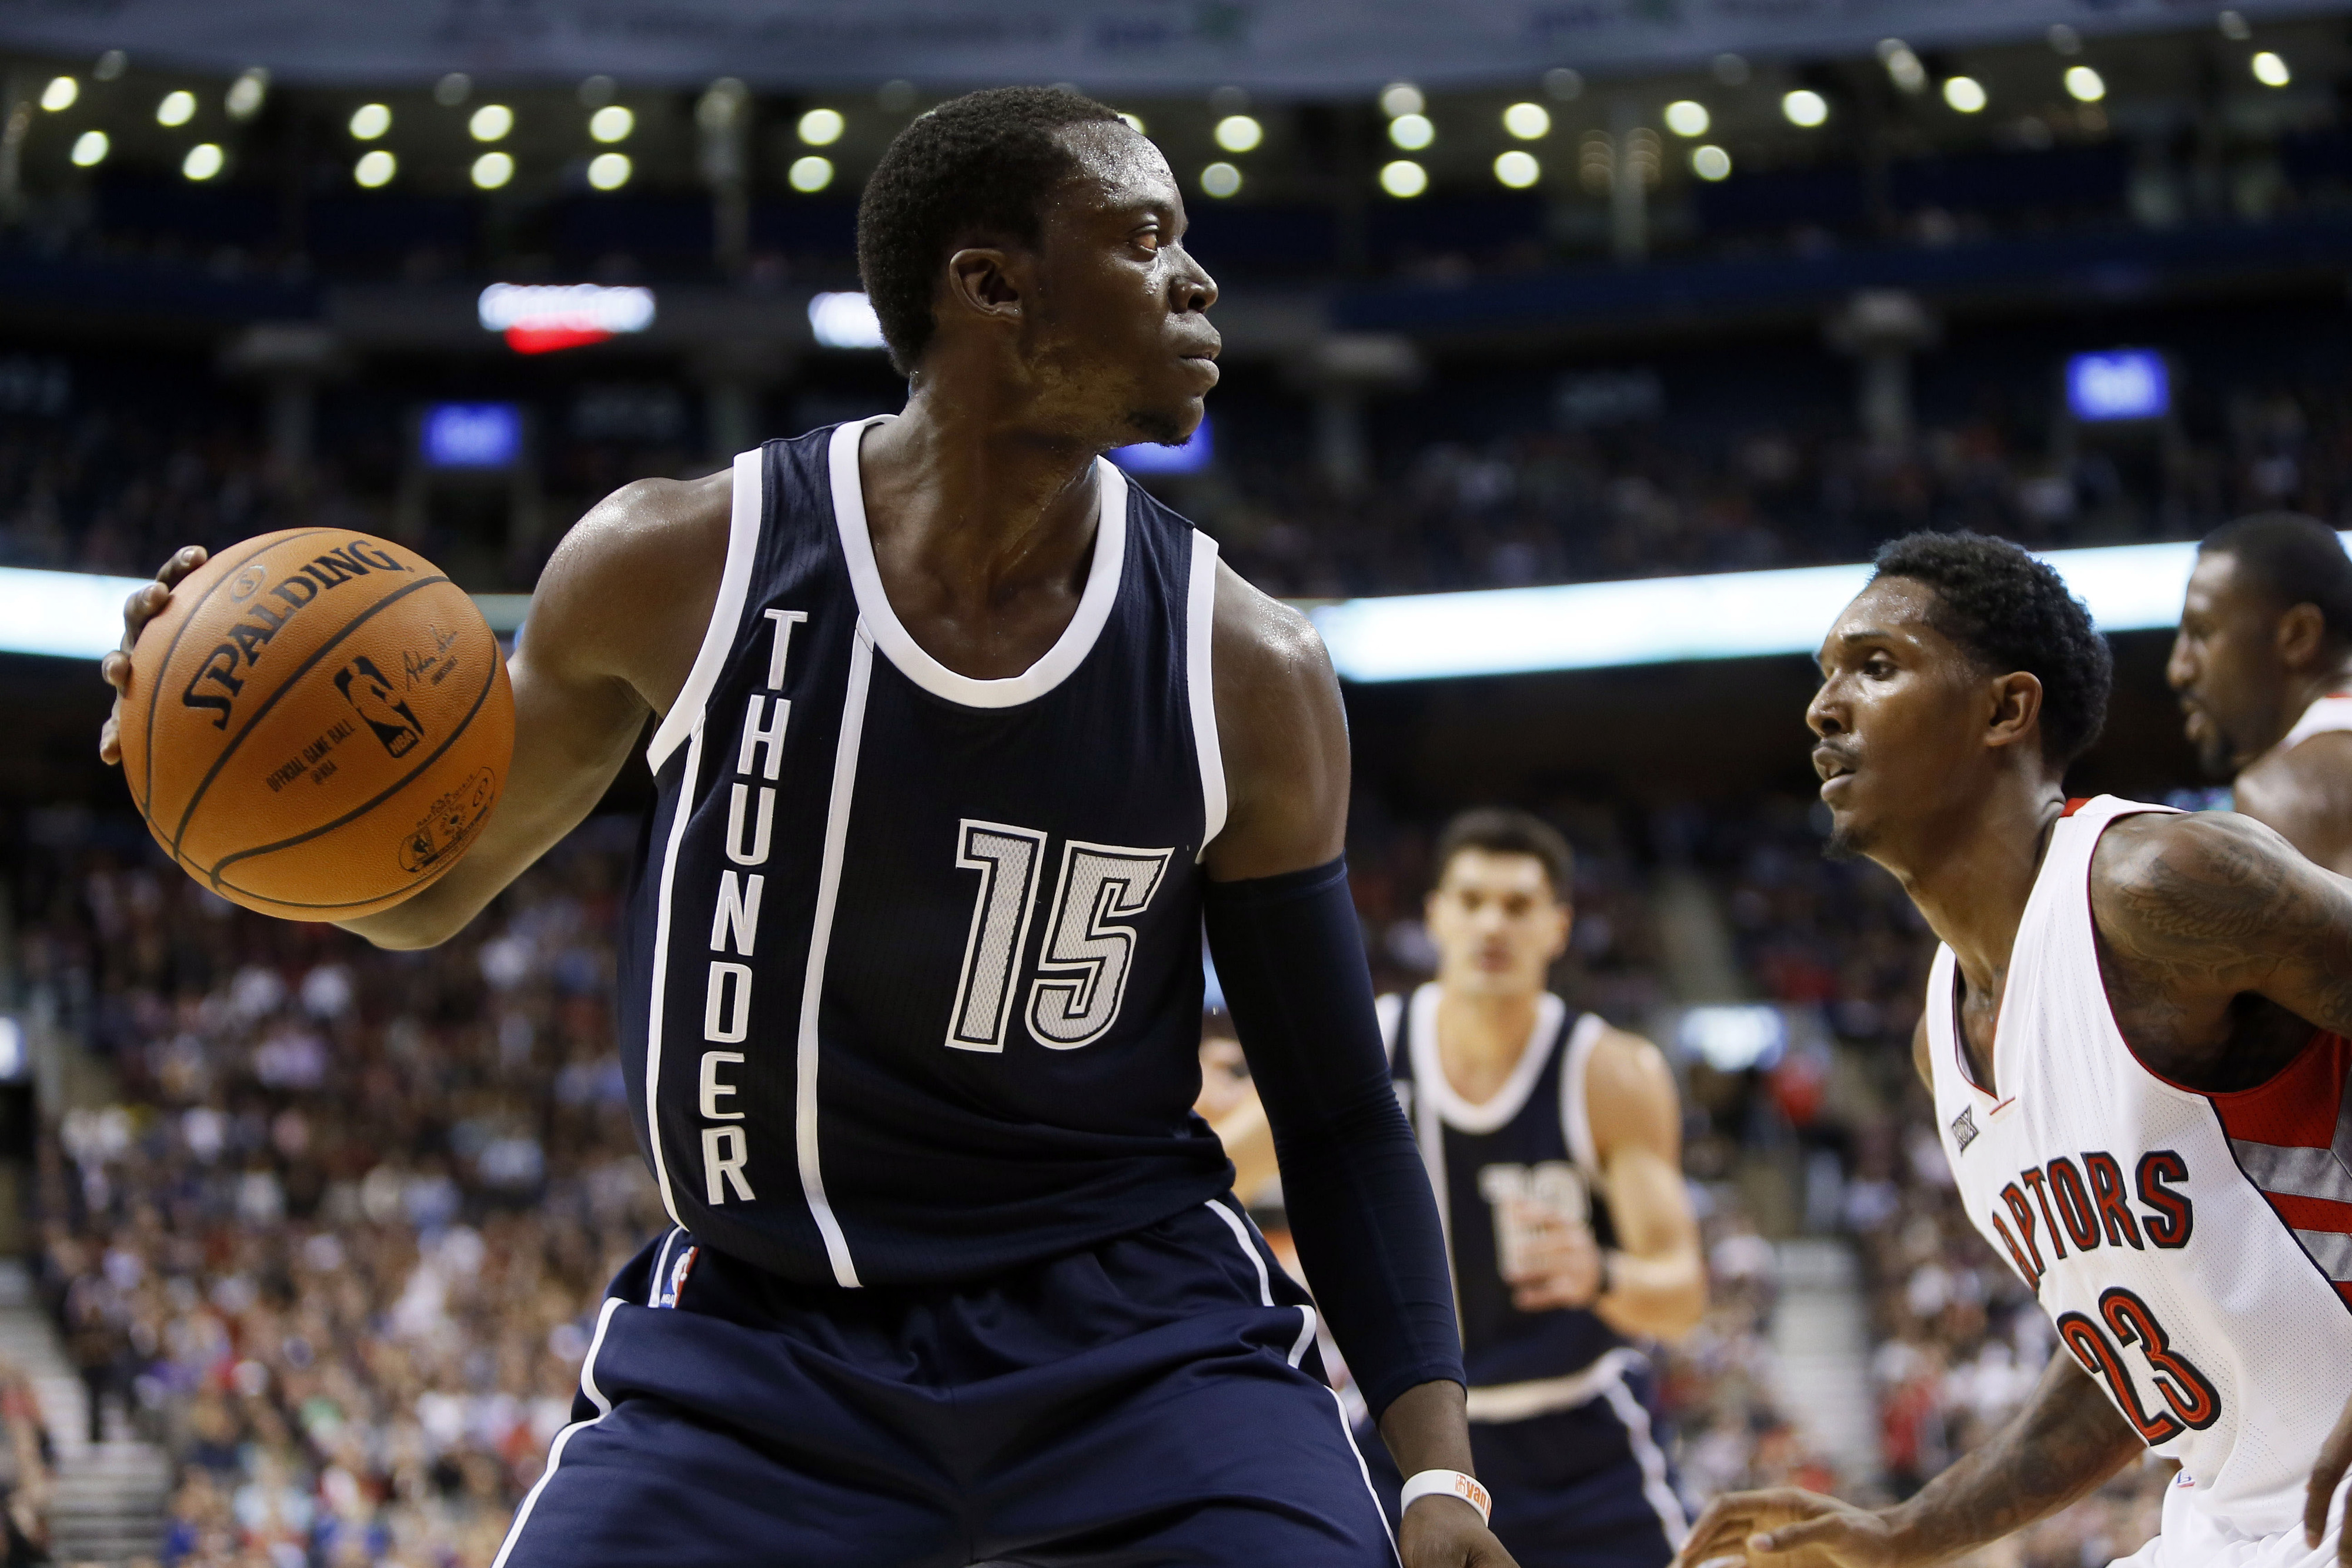 Reggie Jackson's Thunder teammates reportedly froze him out